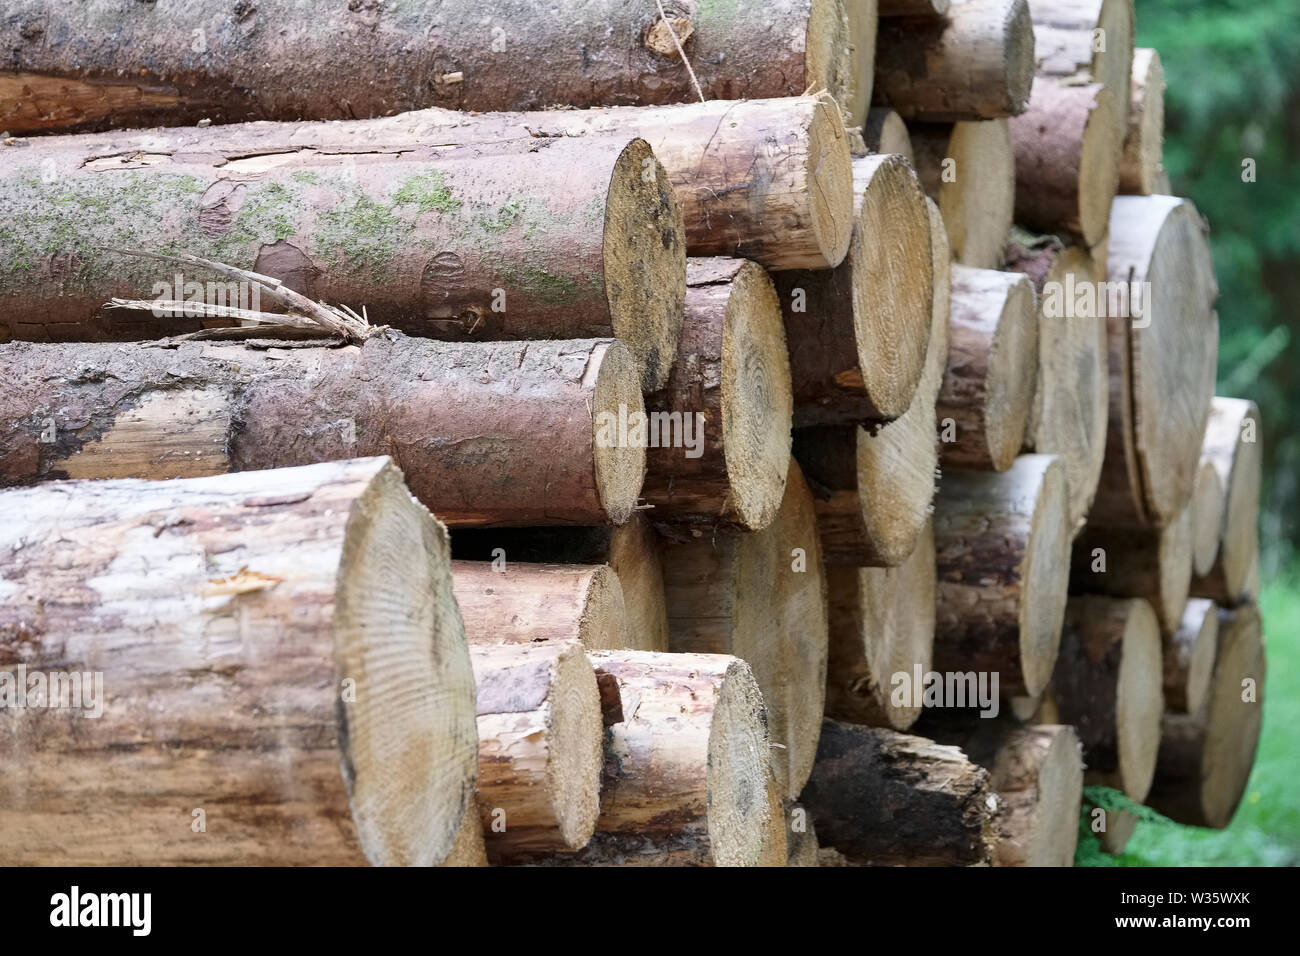 Chopped wood logs stacked in pile at forest - Stock Image